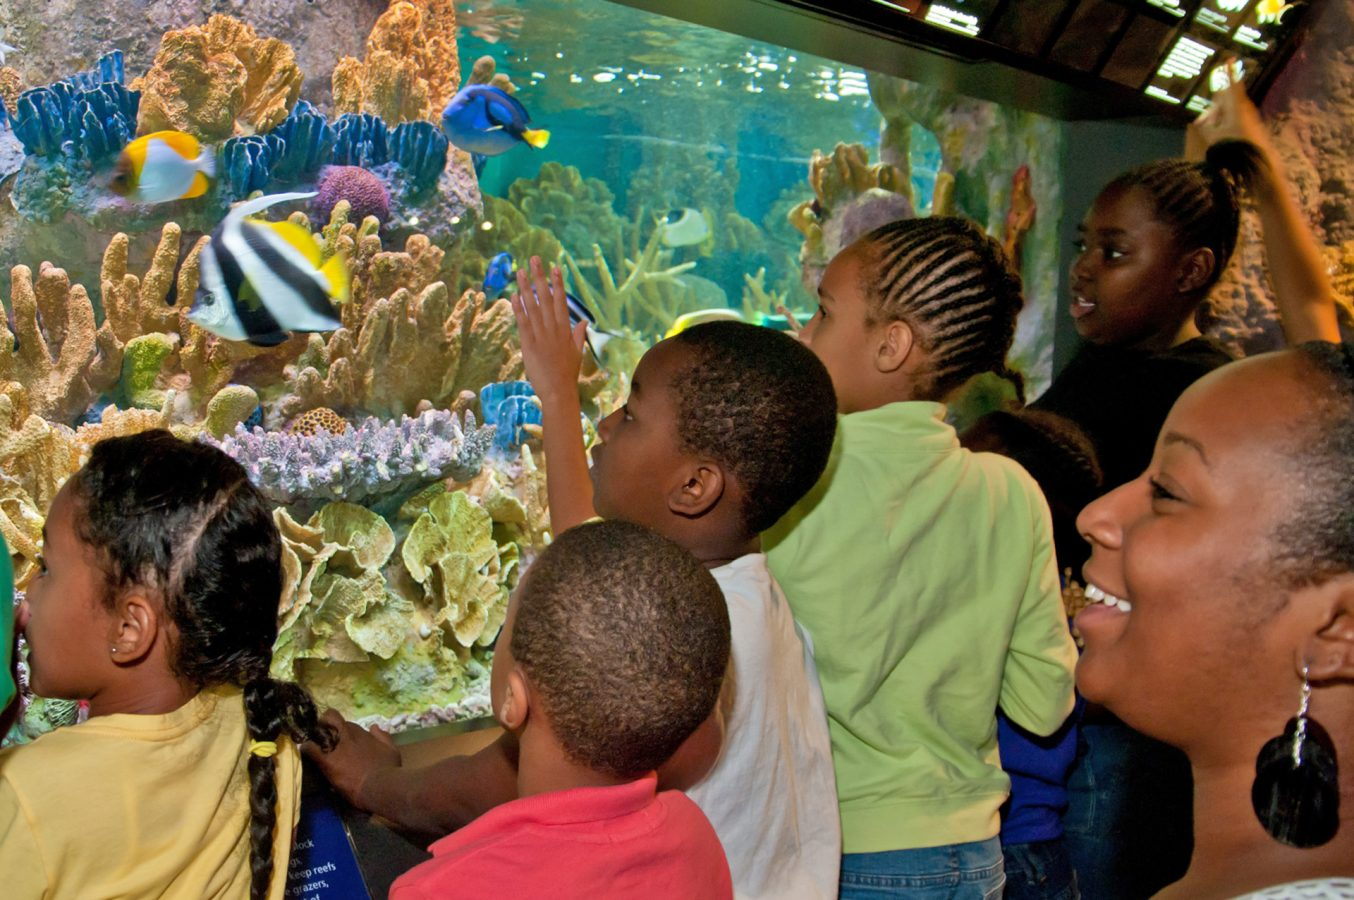 Group of kids looking at tropical fish